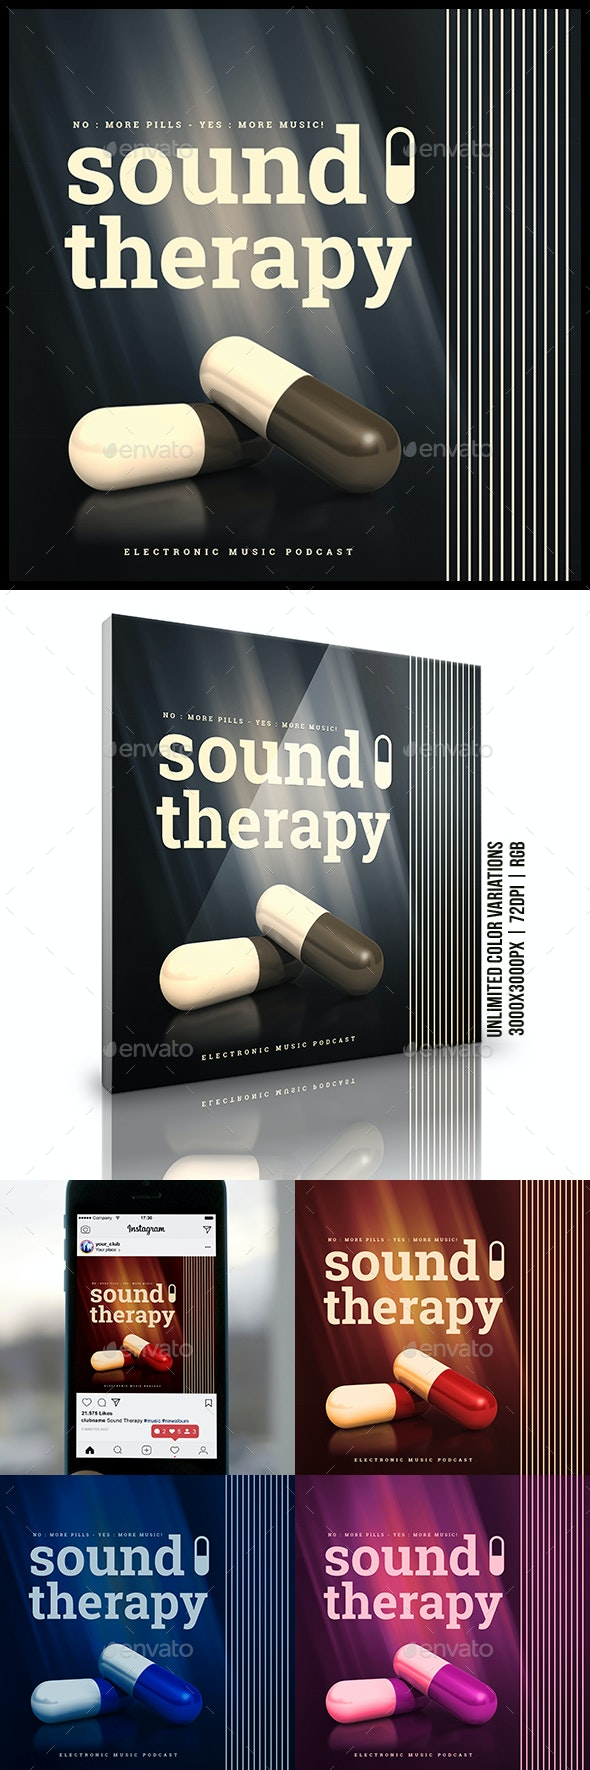 Sound Therapy Electronic Music Podcast Album Cover Template - Miscellaneous Social Media